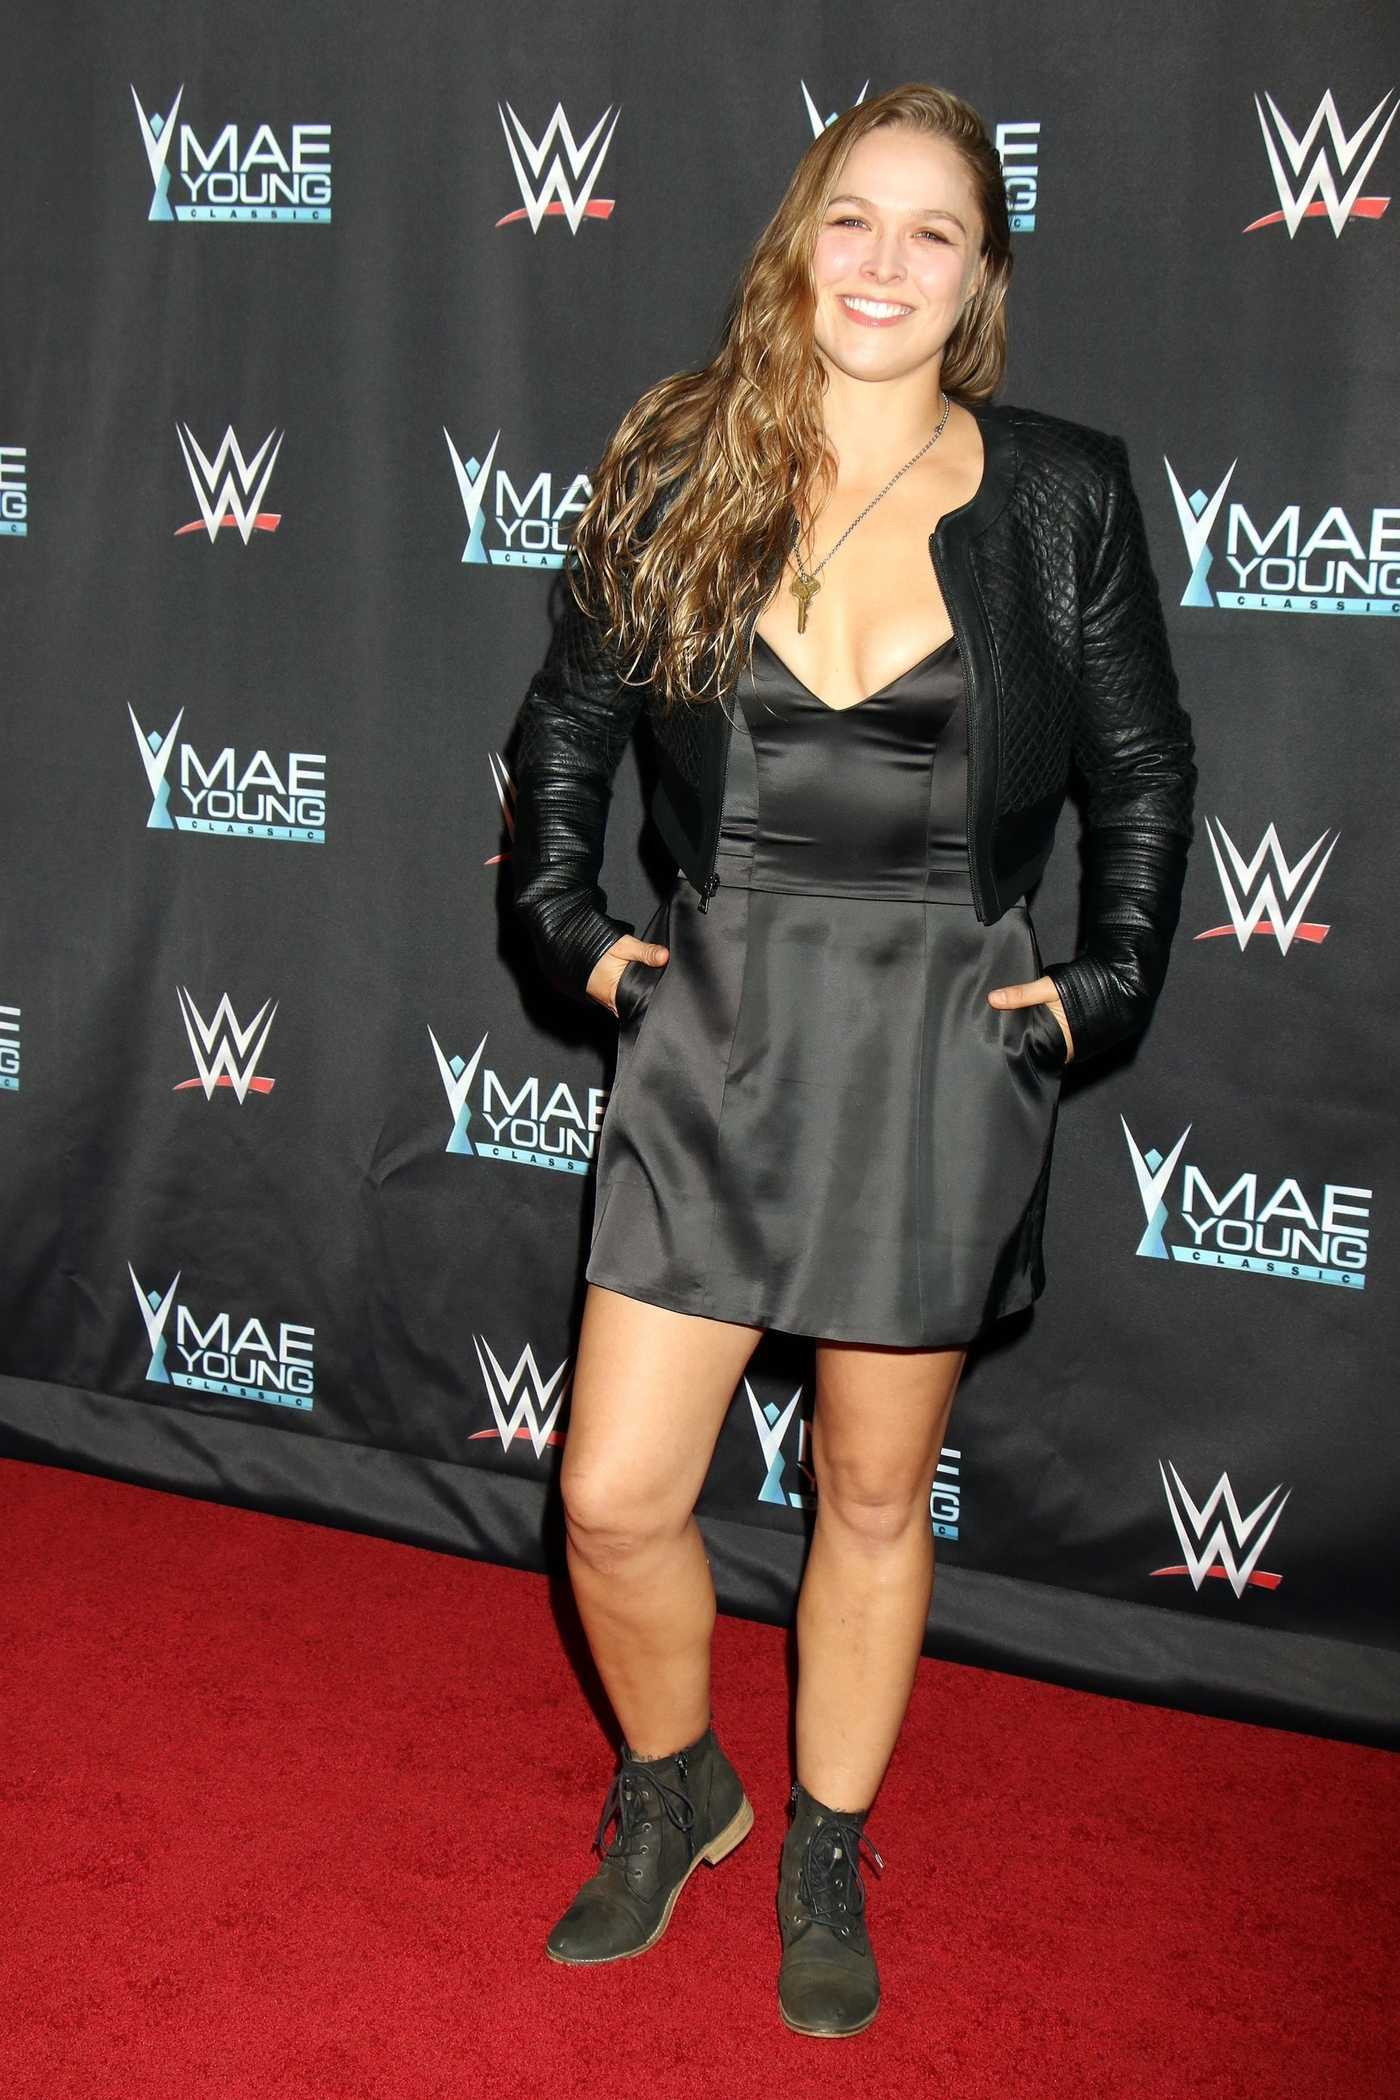 Ronda Rousey at WWE Presents Mae Young Classic Finale in Las Vegas 09/12/2017